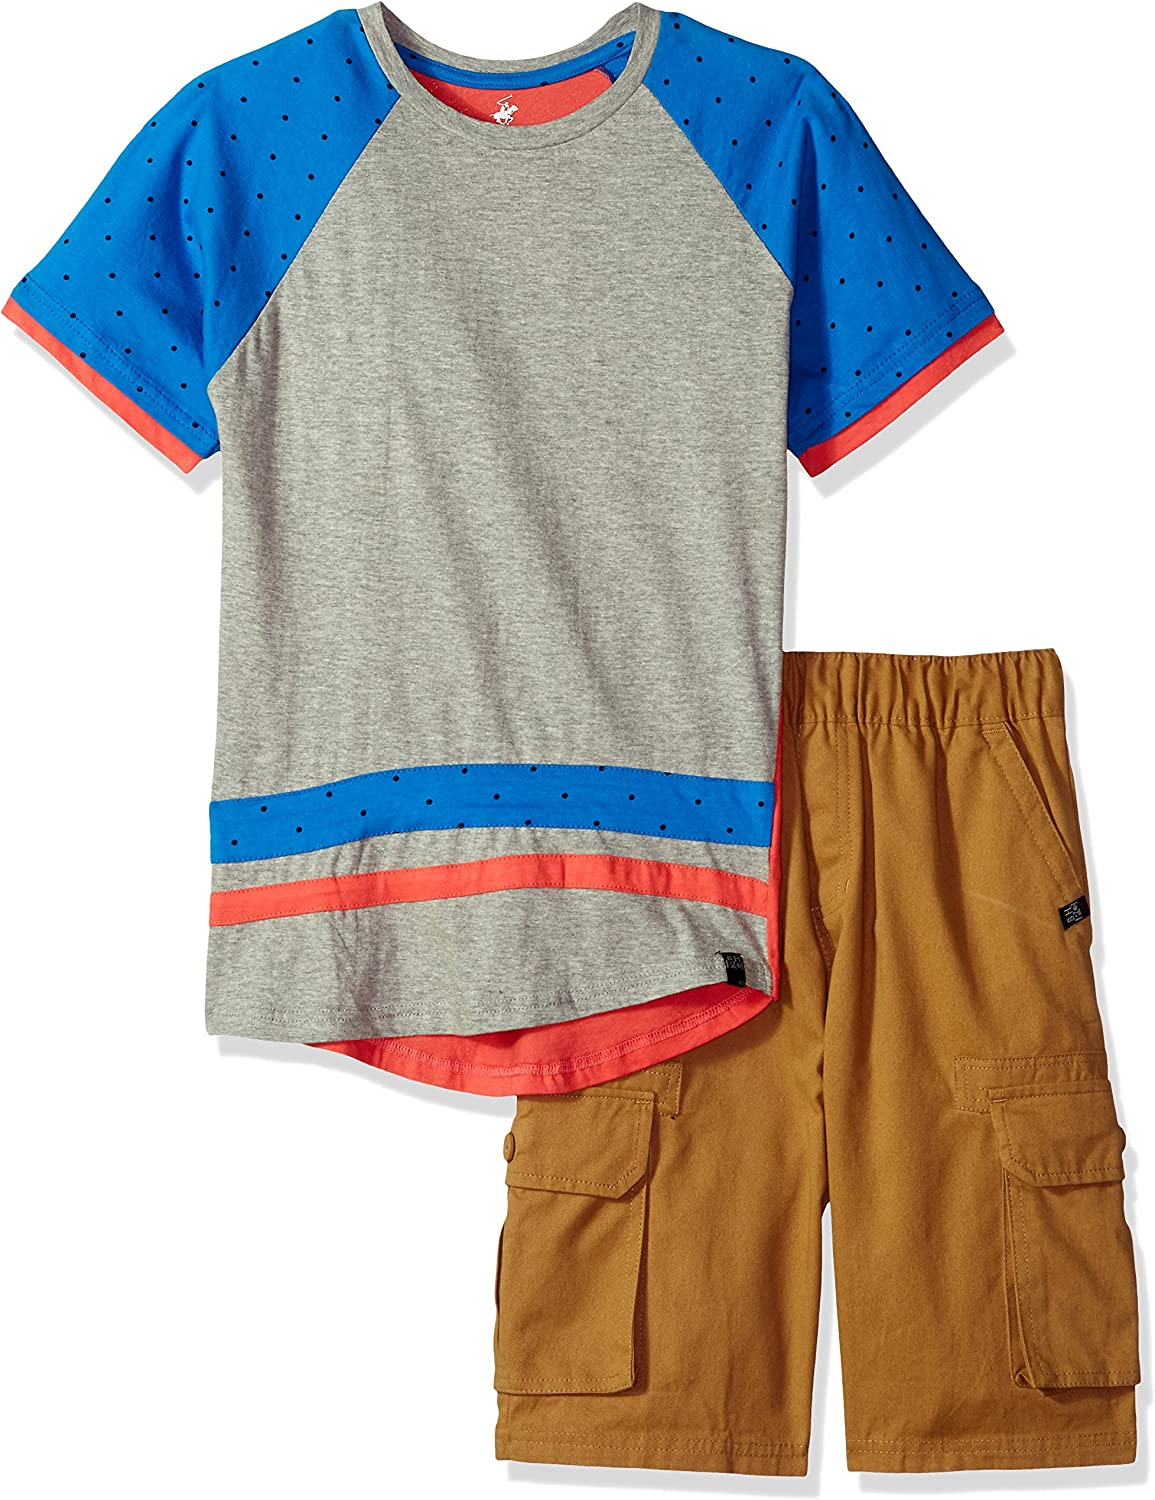 Beverly Hills Polo Club Boys Sleeve Top and Short Set